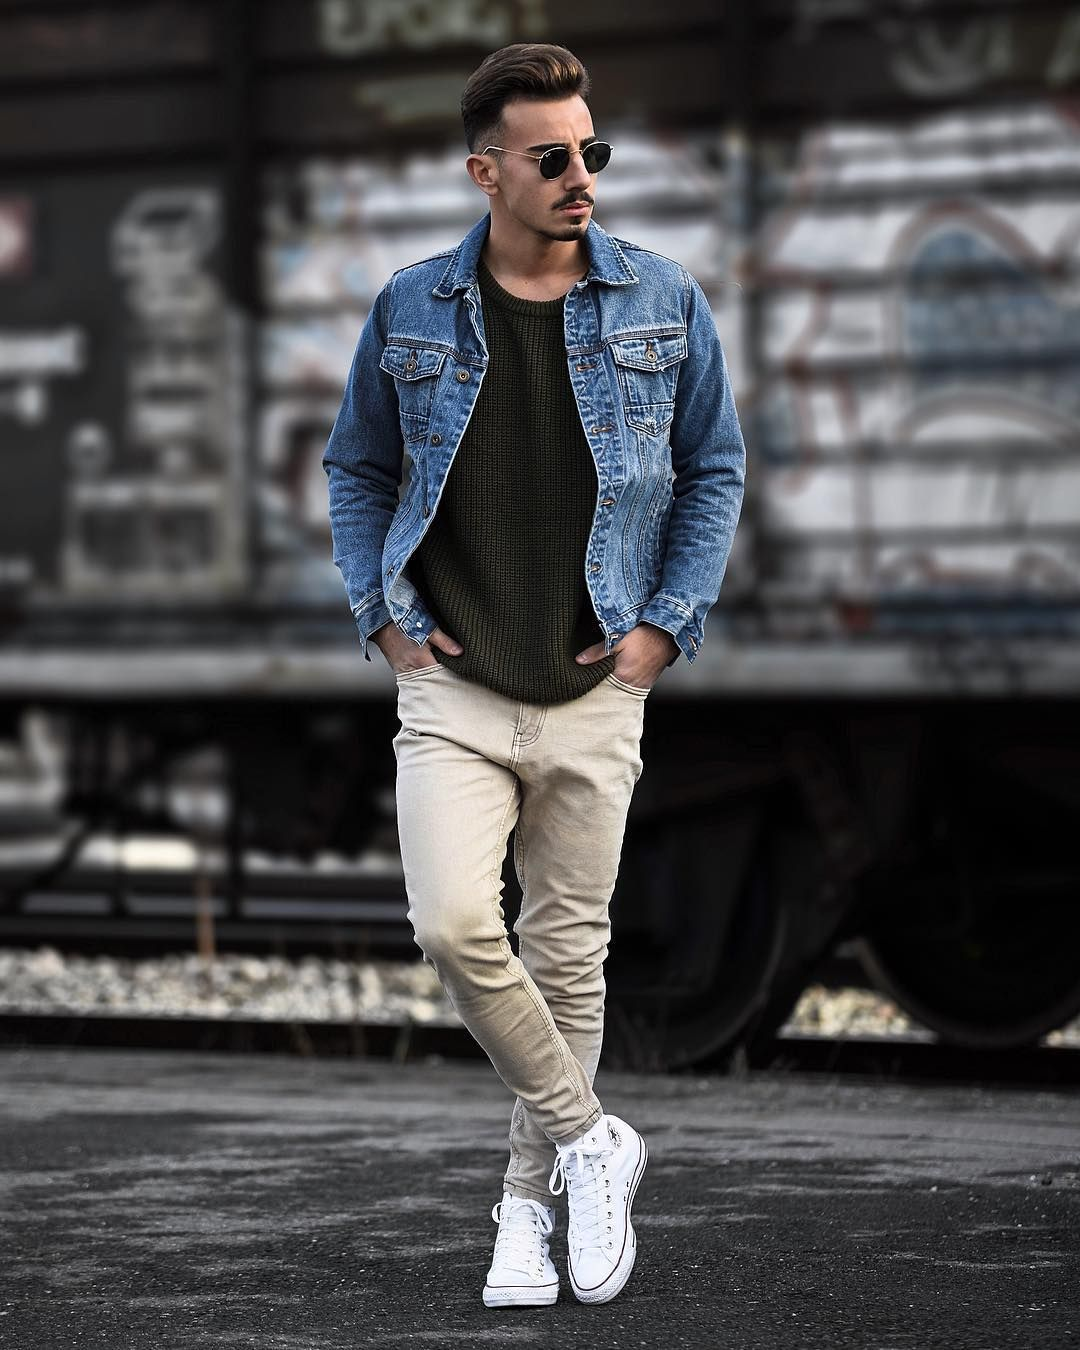 Follow Nicholas Dallangelo Instagram Stylish Men Casual Mens Casual Outfits Summer Mens Casual Outfits [ 1350 x 1080 Pixel ]